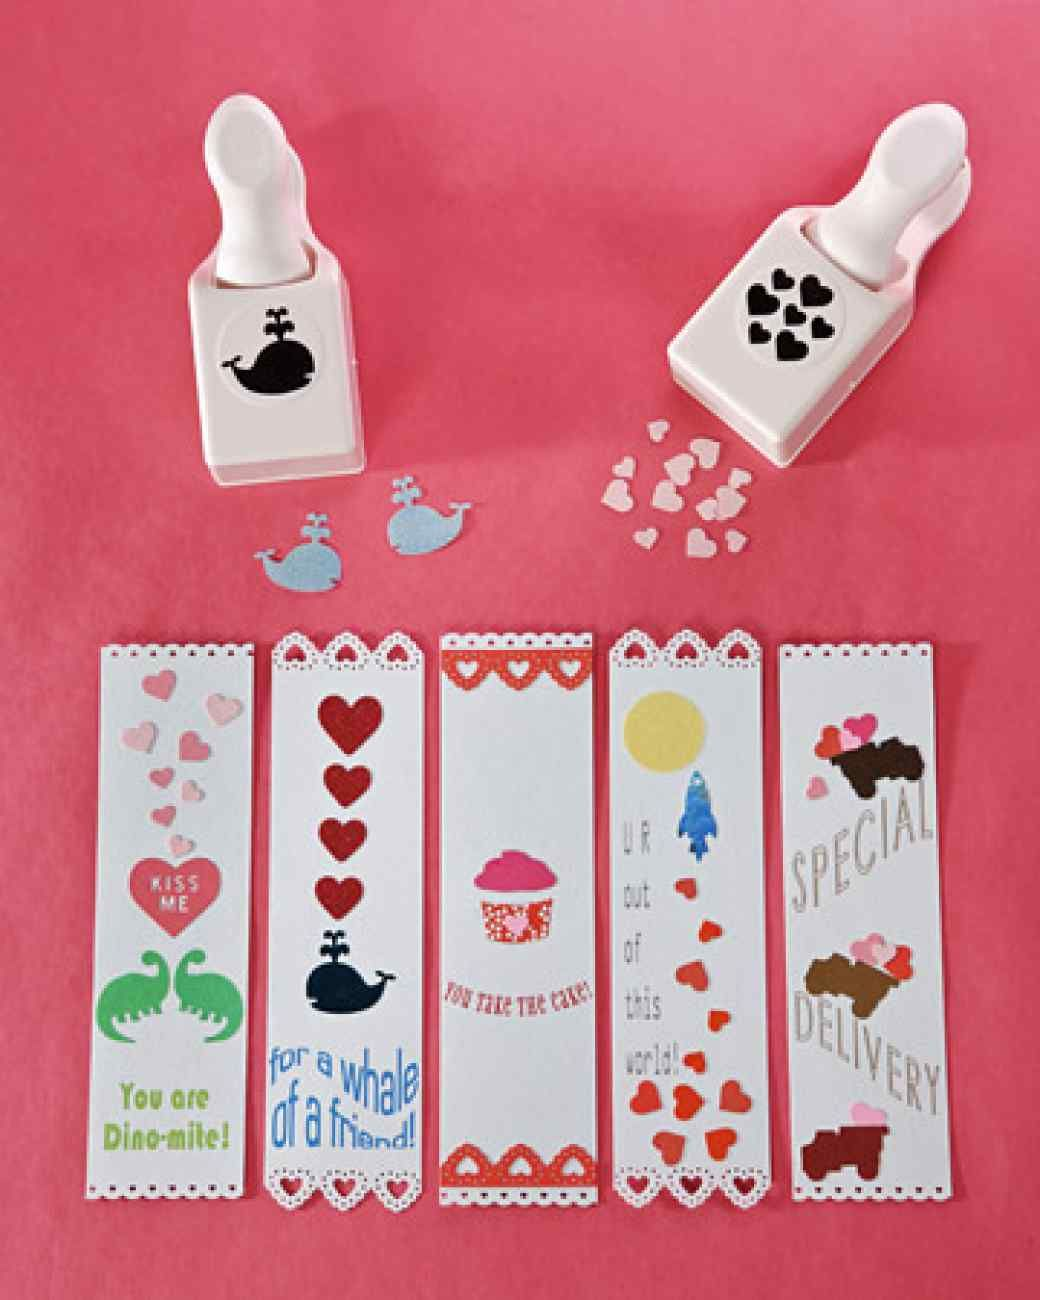 Valentines Day Card Bookmark Pictures Photos and Images for – Pinterest Valentine Day Cards